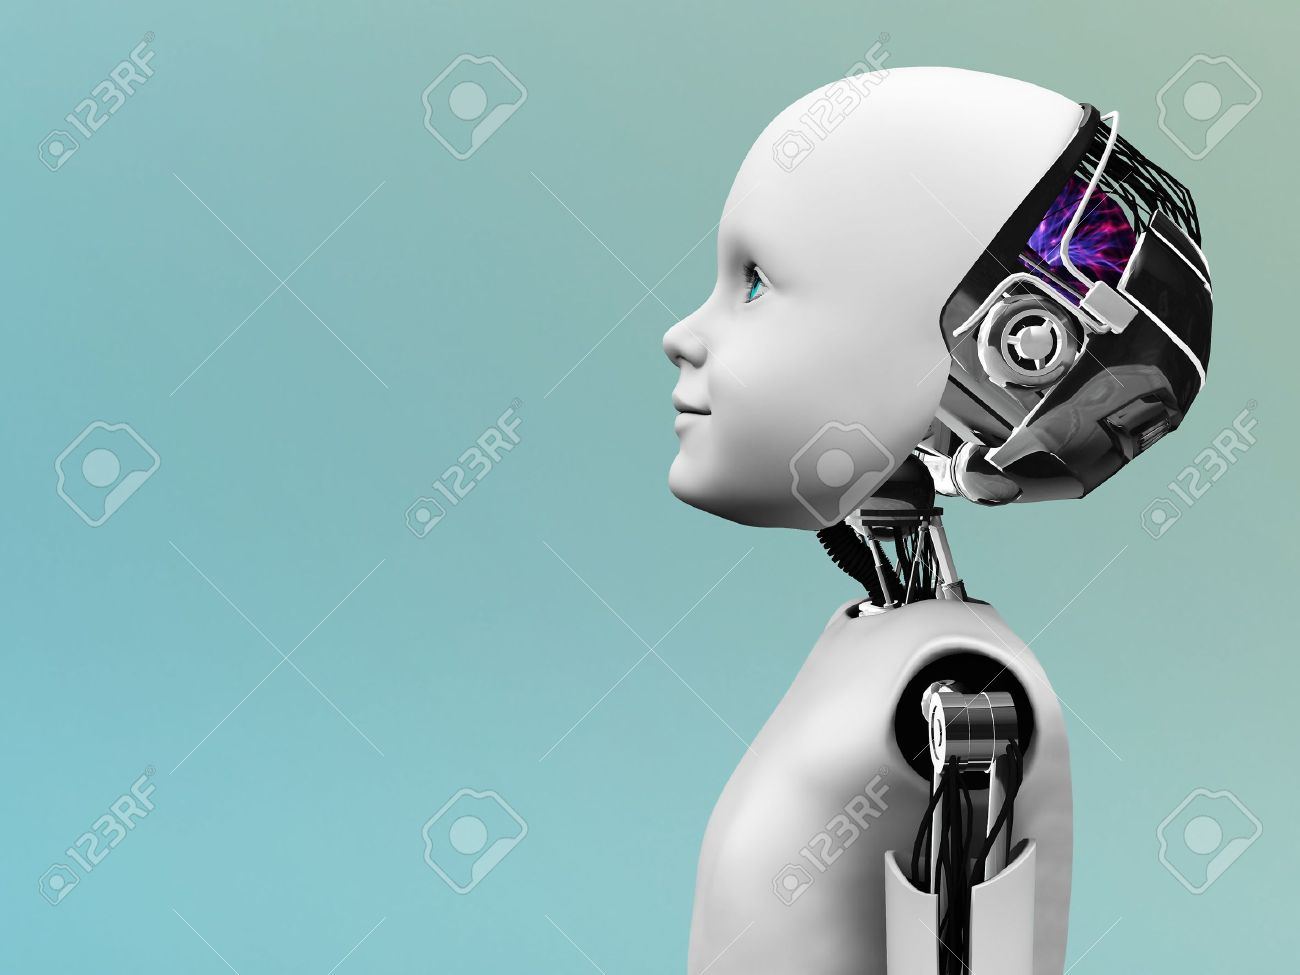 The profile of a child robot gazing into the future. Stock Photo - 12323281